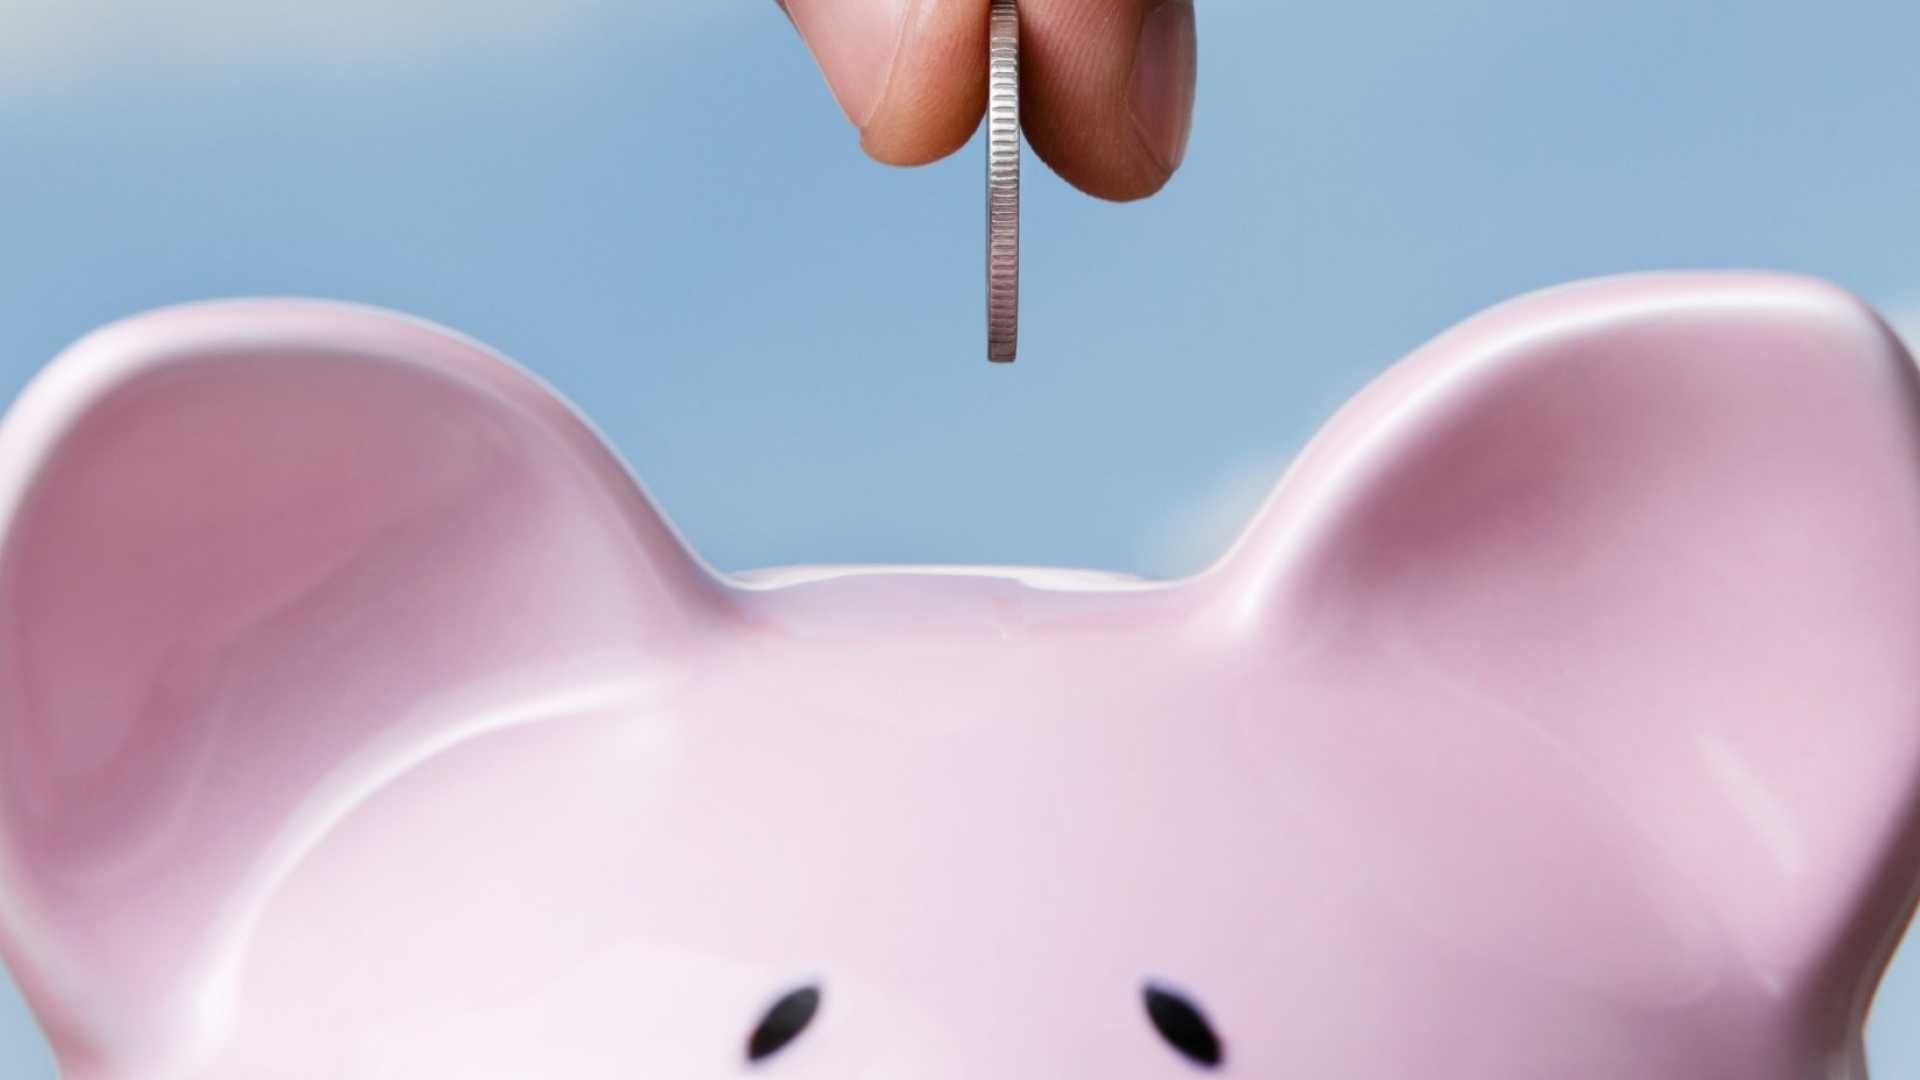 5 Things You Need to Make Room for in Your Budget This Year